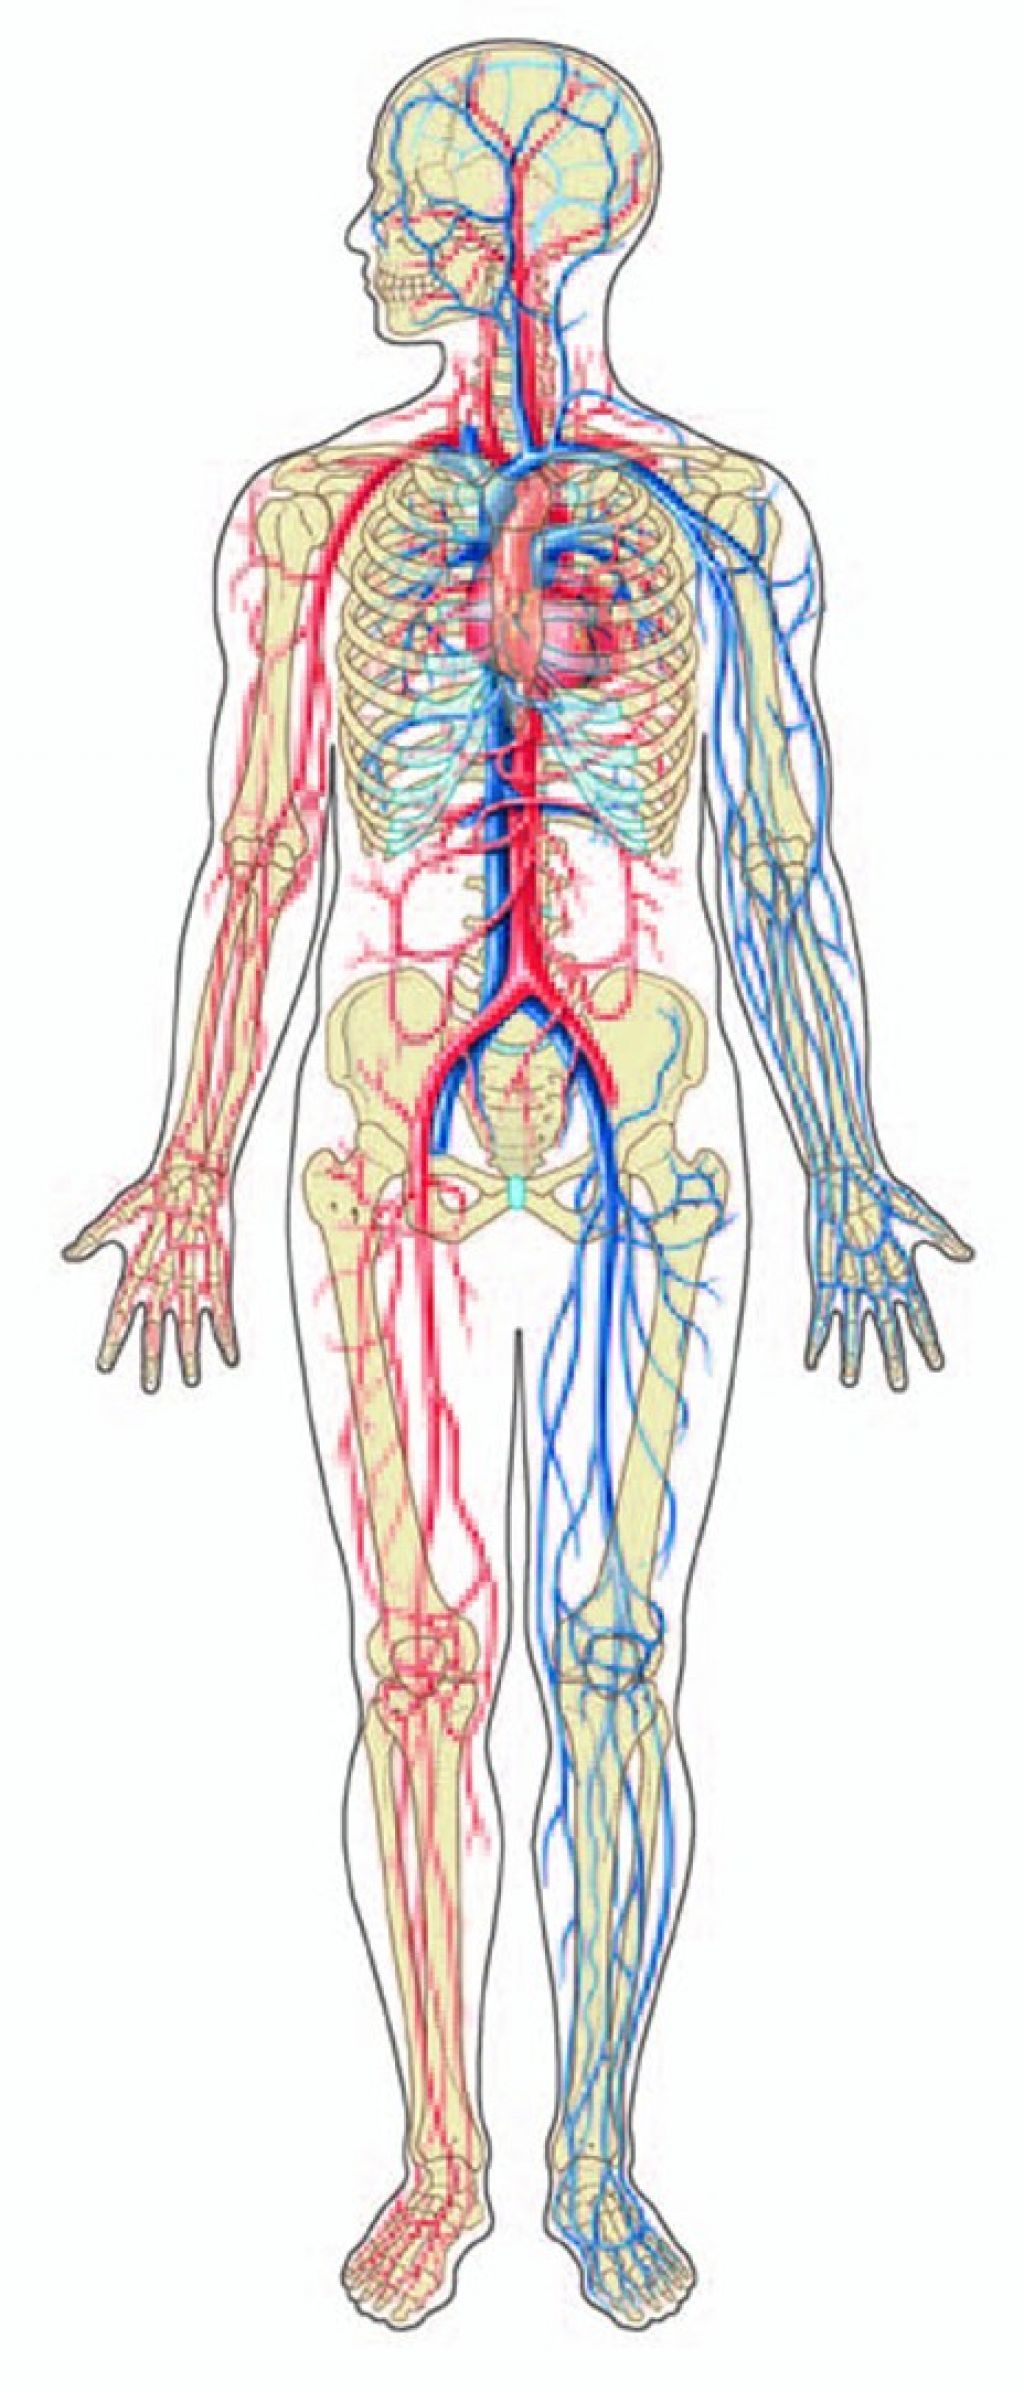 hight resolution of circulatory system diagram black and white google search